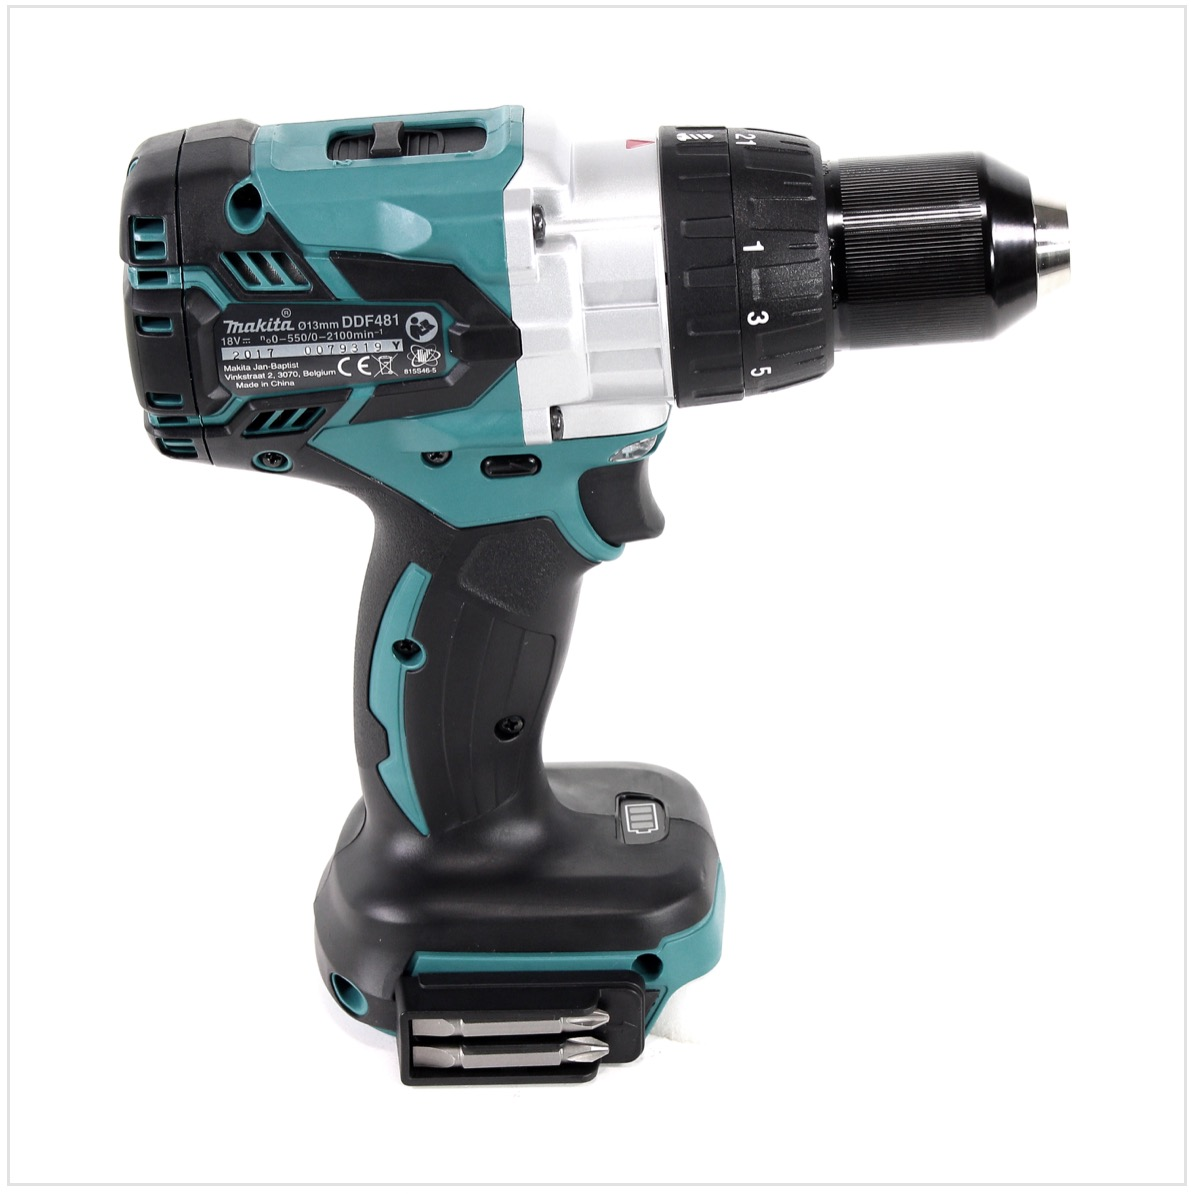 makita ddf 481 z 18 v akku bohrschrauber brushless 115nm solo ohne akku lader ebay. Black Bedroom Furniture Sets. Home Design Ideas